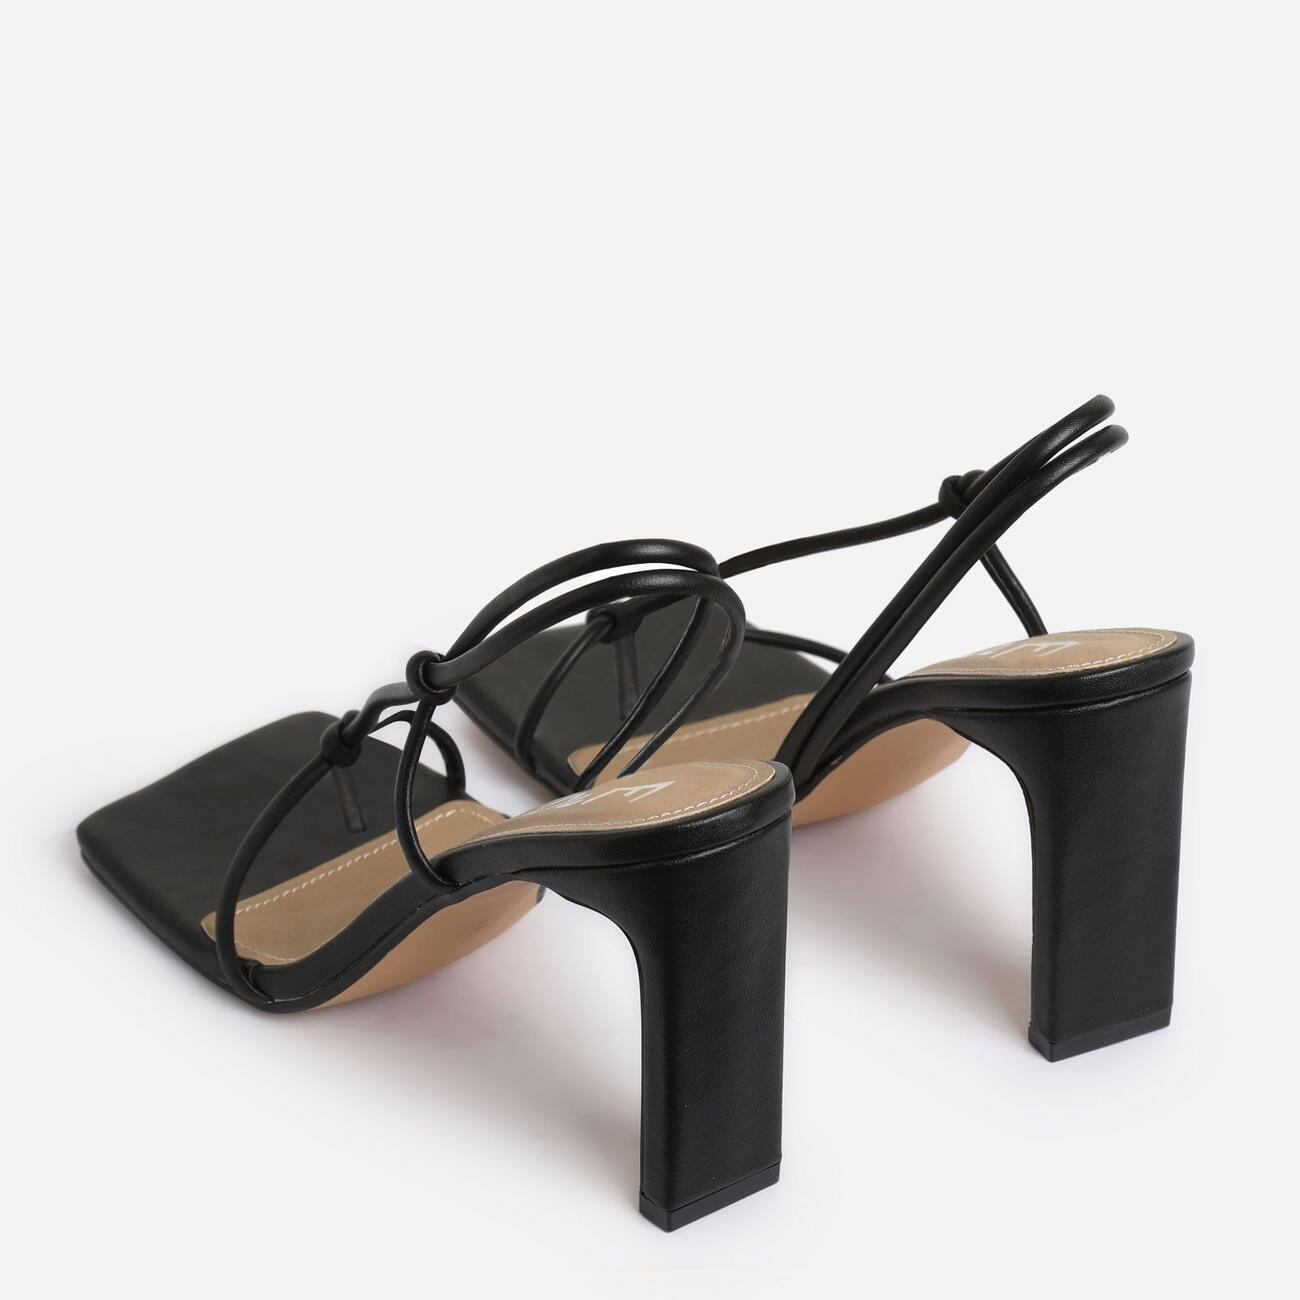 Marble Square Toe Knot Detail Heel In Black Faux Leather Image 4